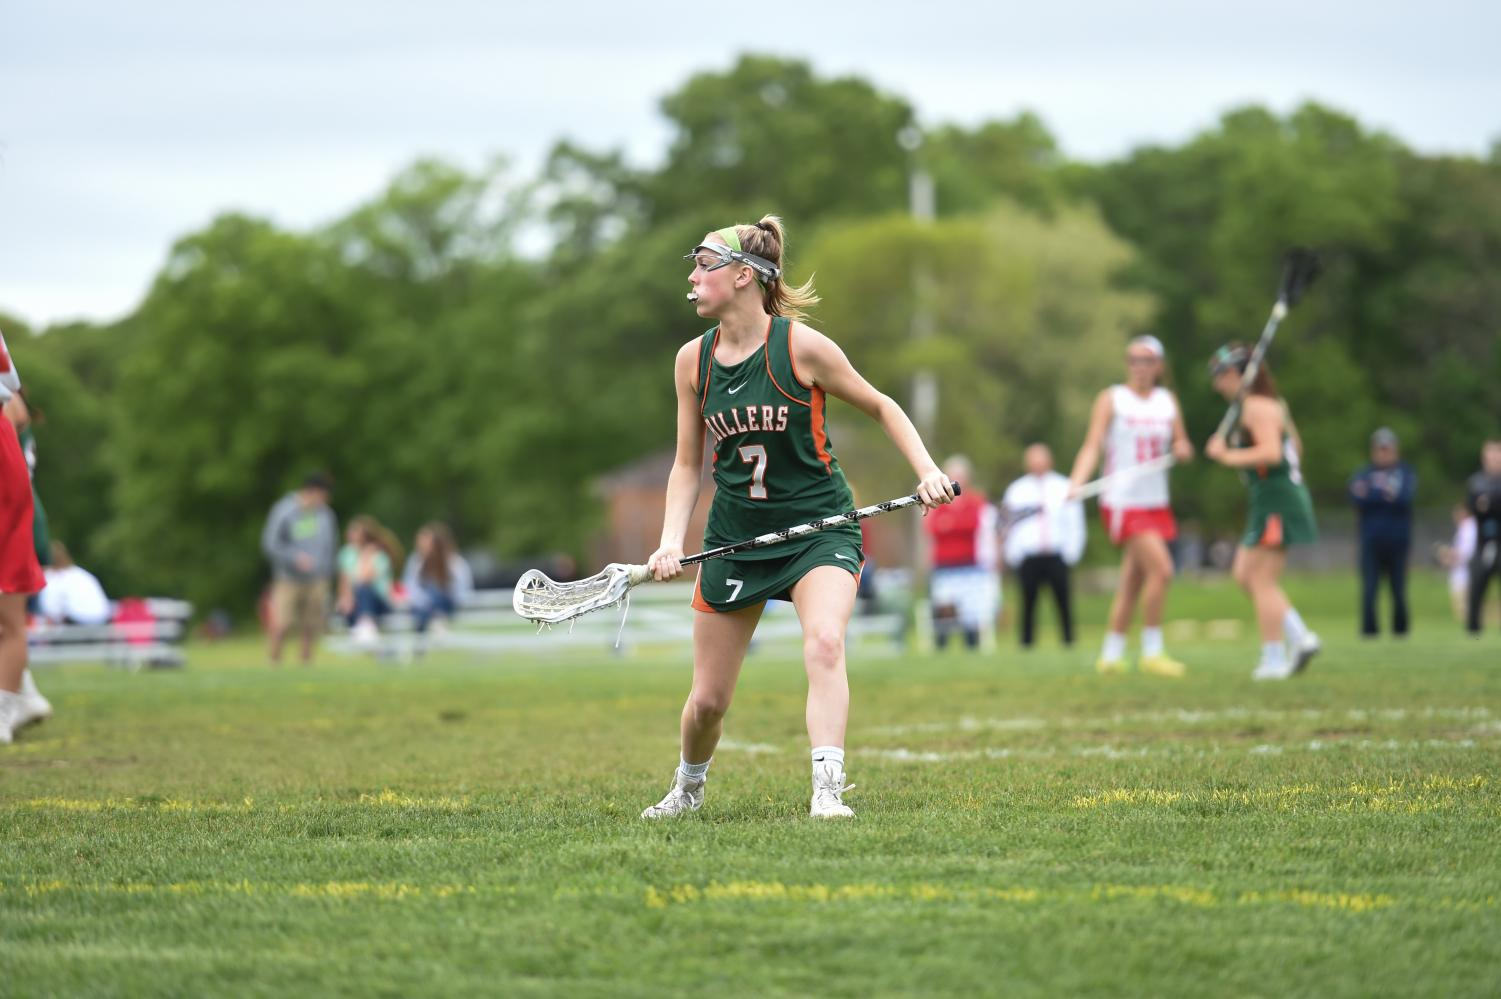 Senior Caroline Murphy was one of the biggest losses for the girl's lacrosse team this season.